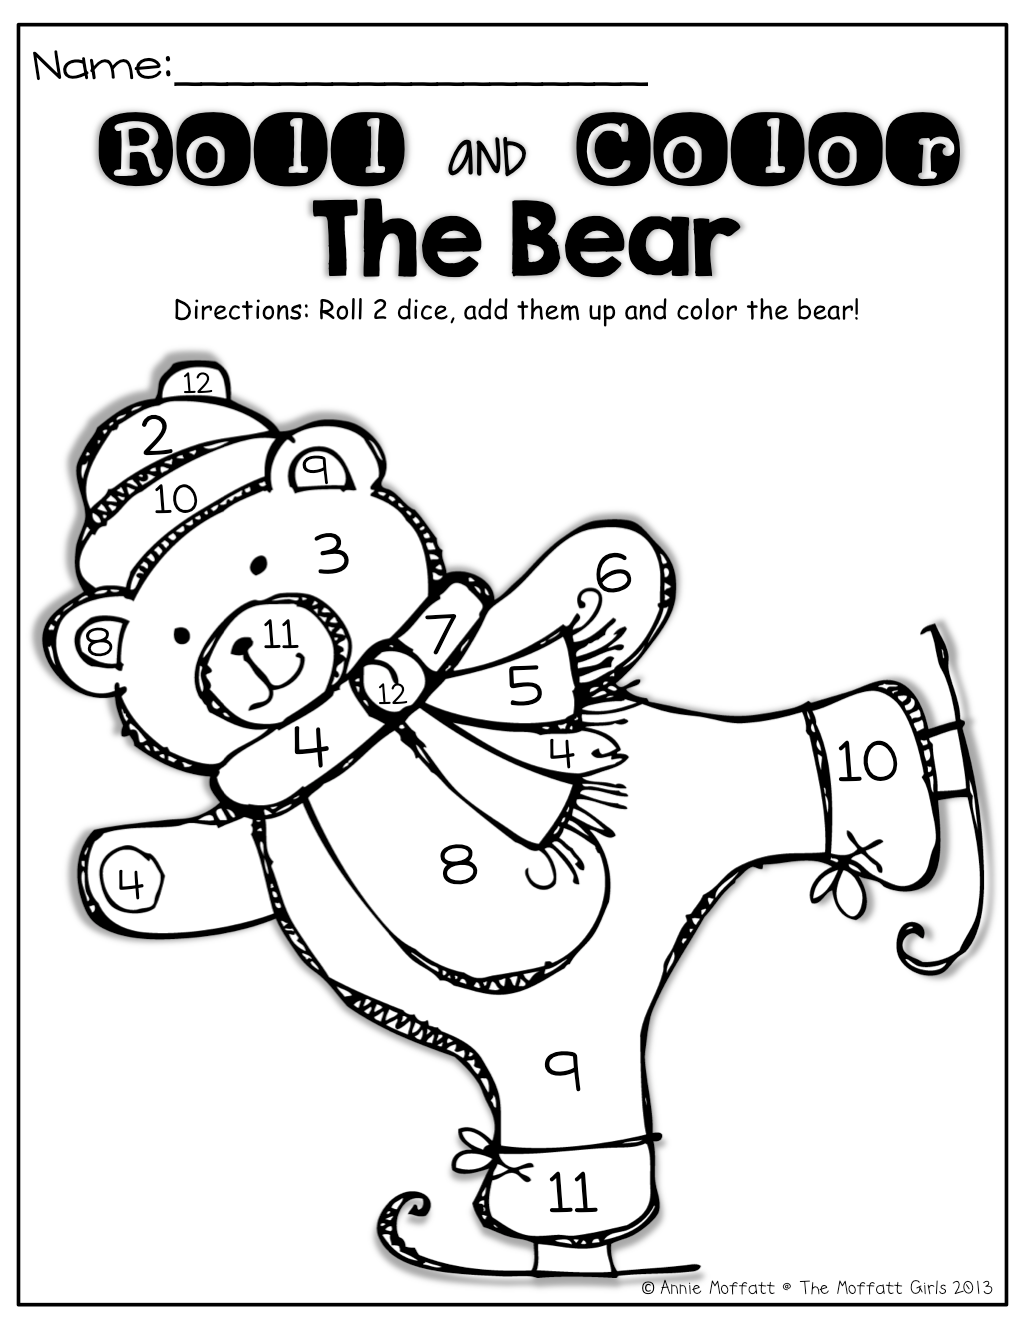 Roll 2 Dice Add Them Up And Color The Bear Turn It Into A Game Who Can Color Their Bear First